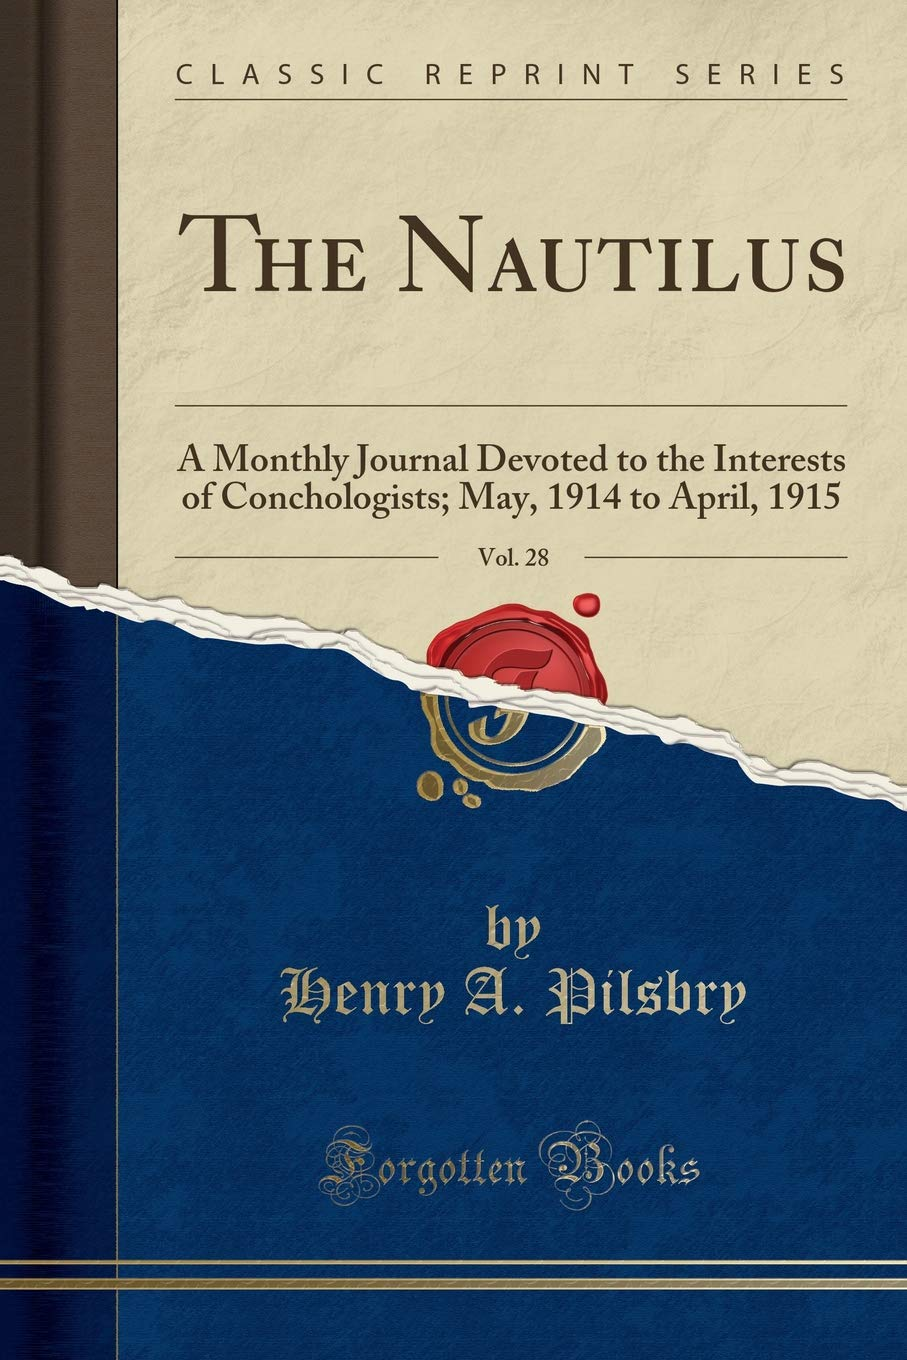 The Nautilus Vol 28 A Monthly Journal Devoted To